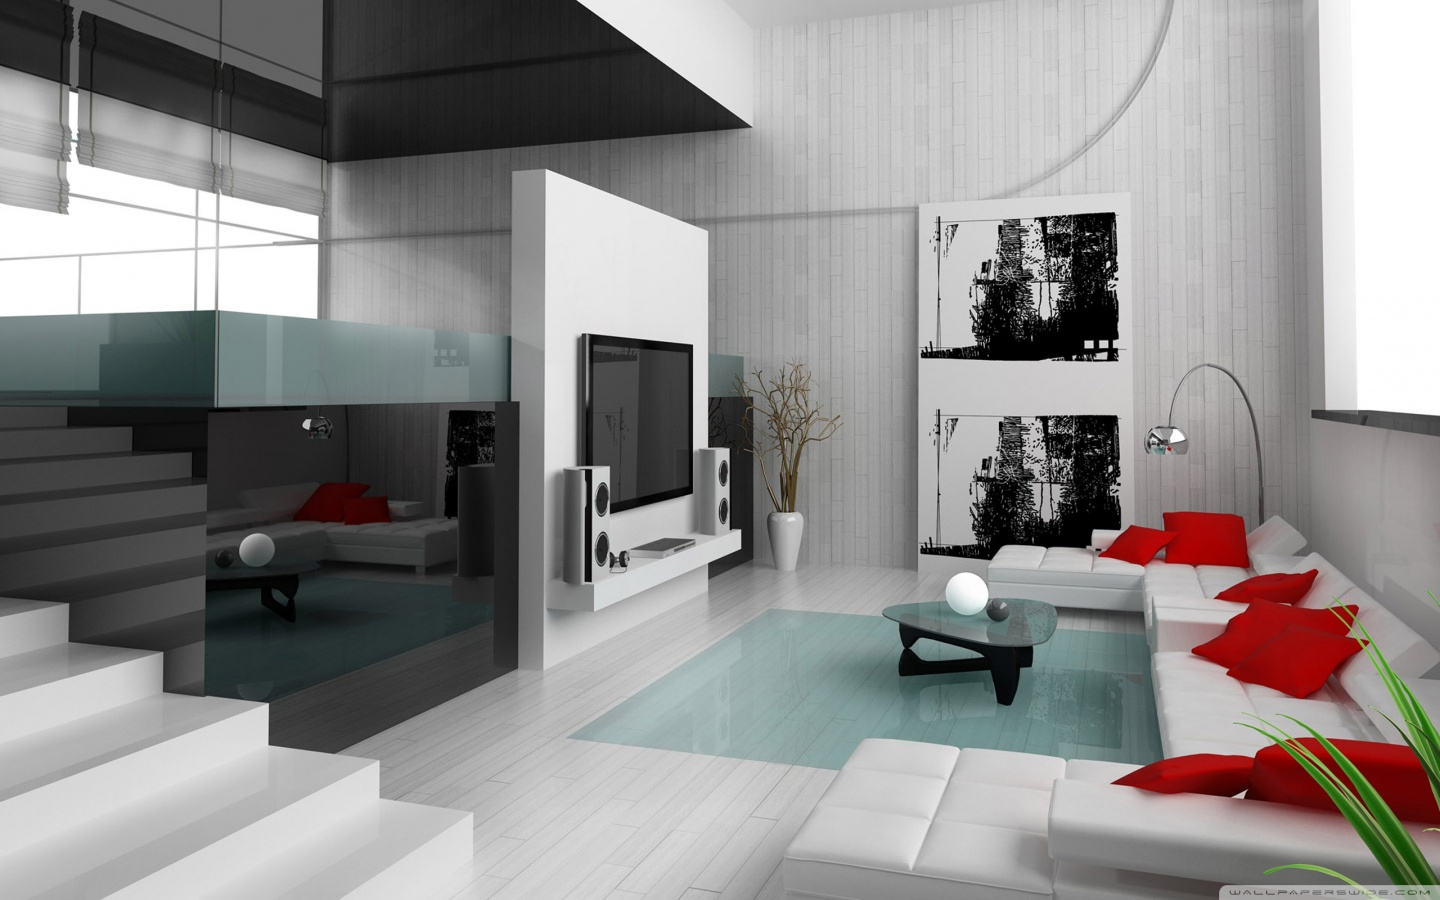 minimalist interior design imagination art architecture On home indoor design